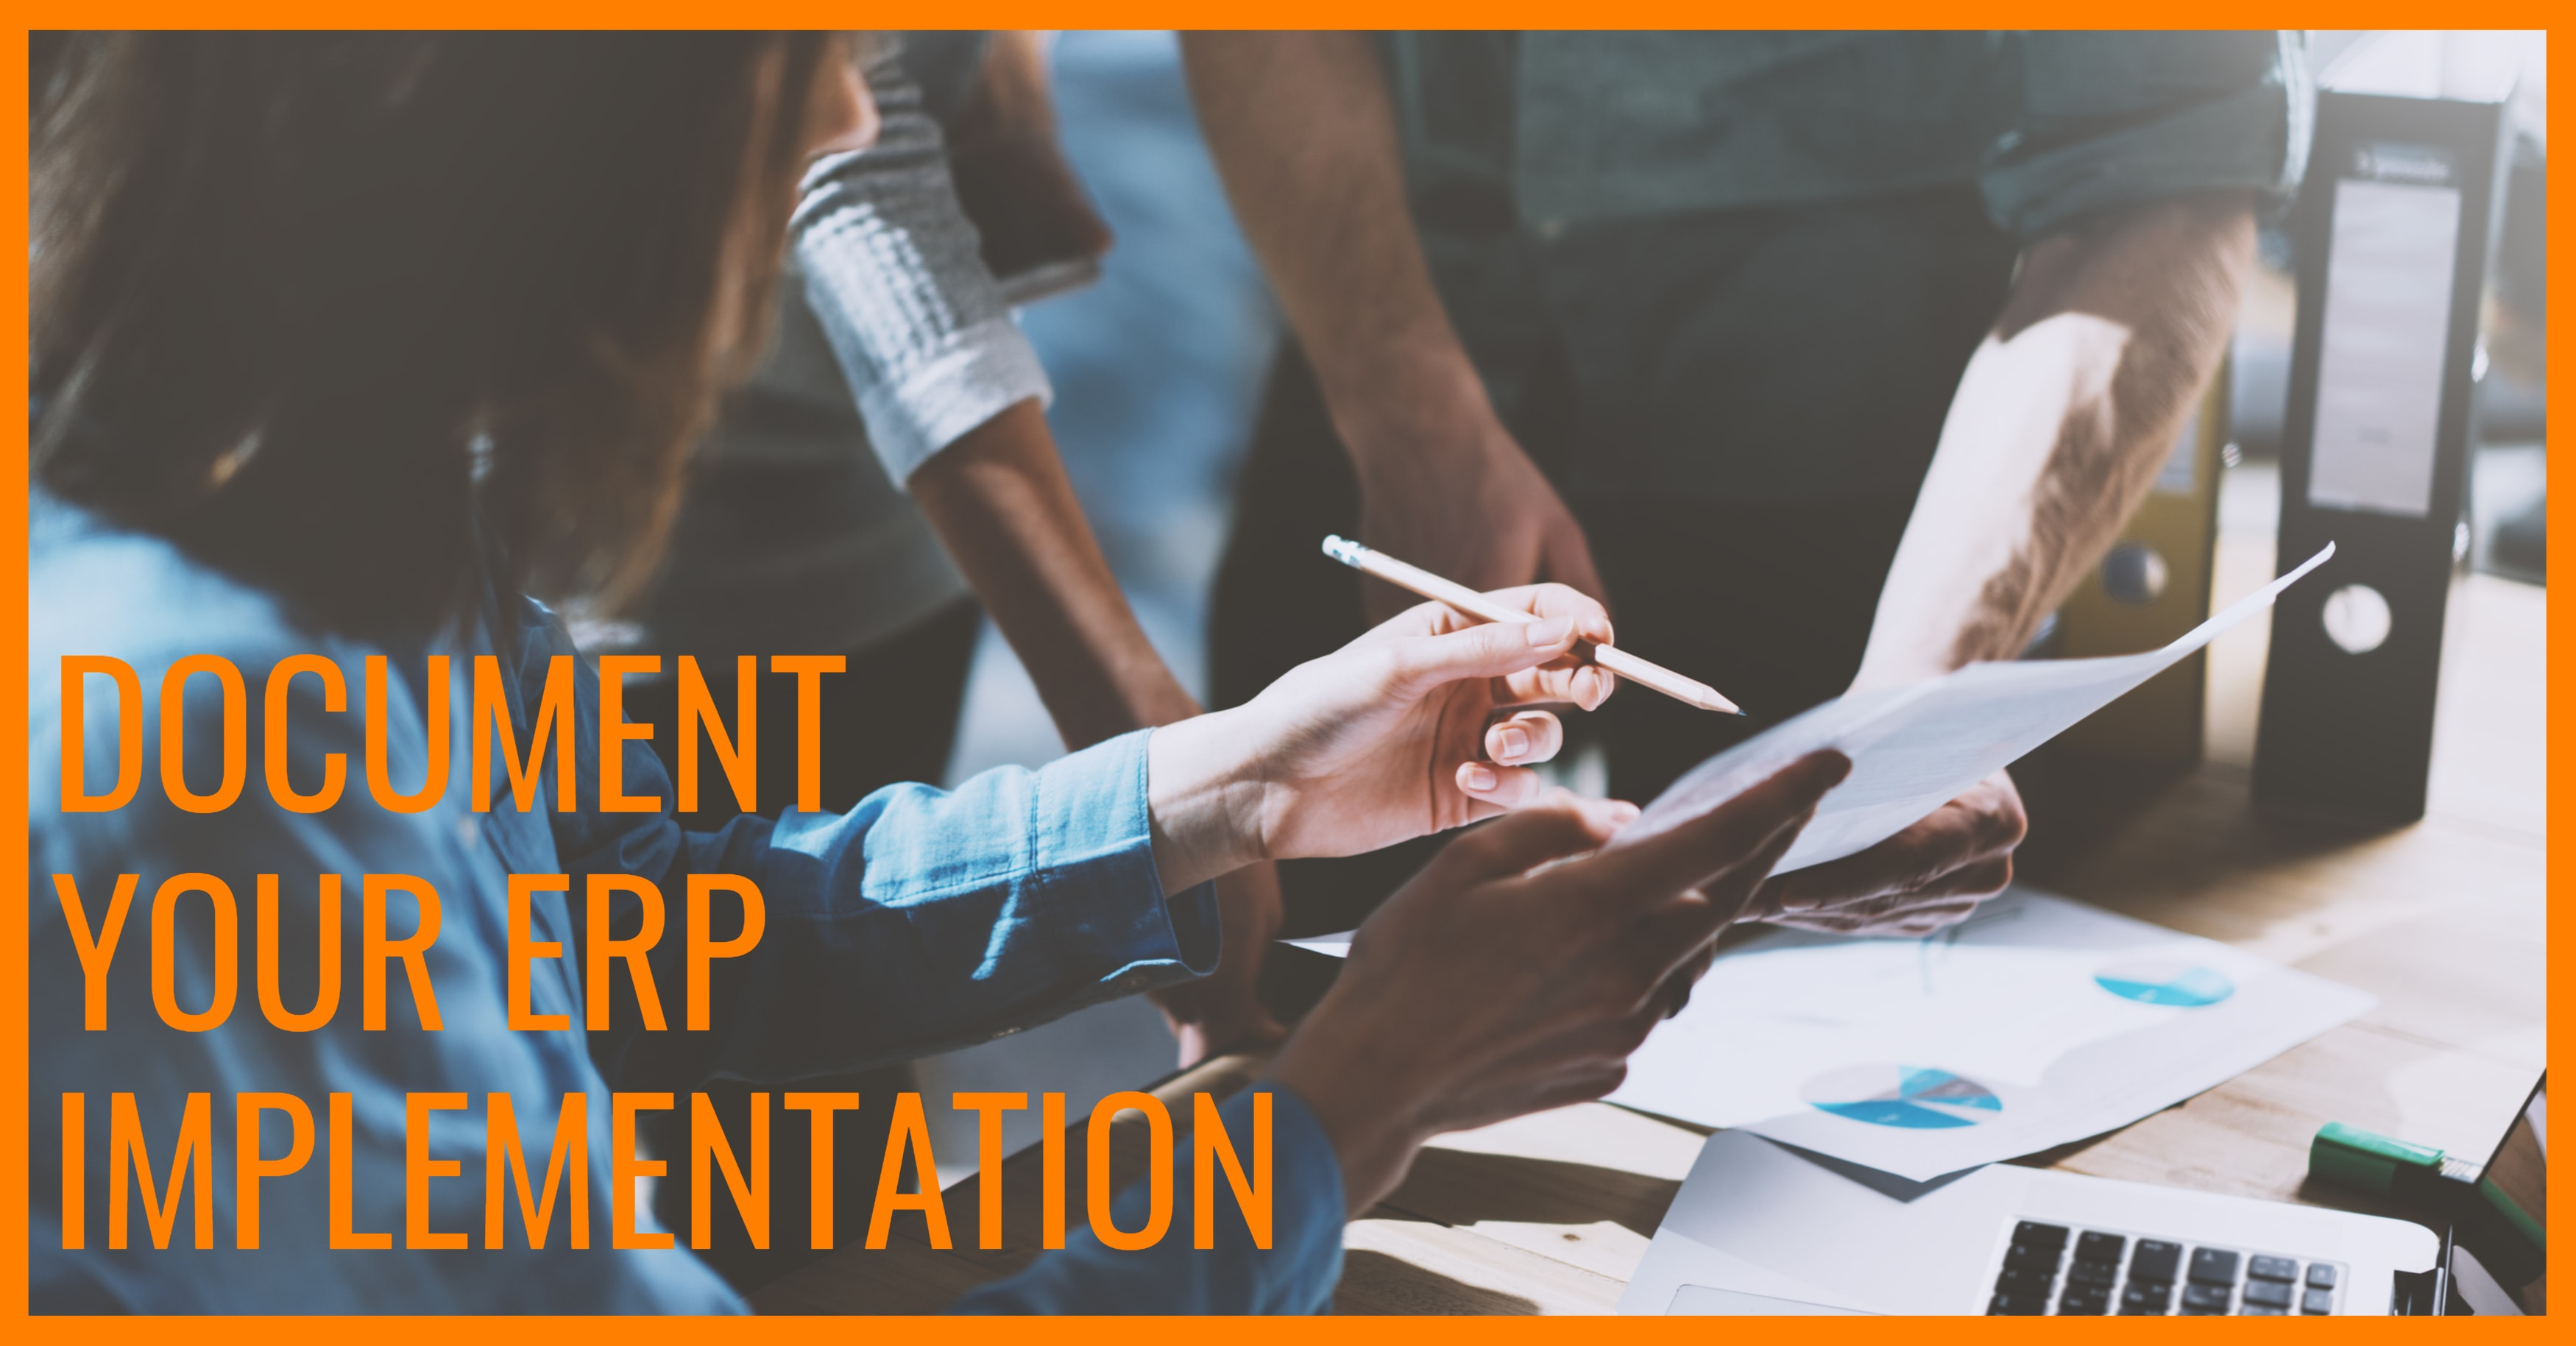 ERP Process Documentation is Non-Negotiable